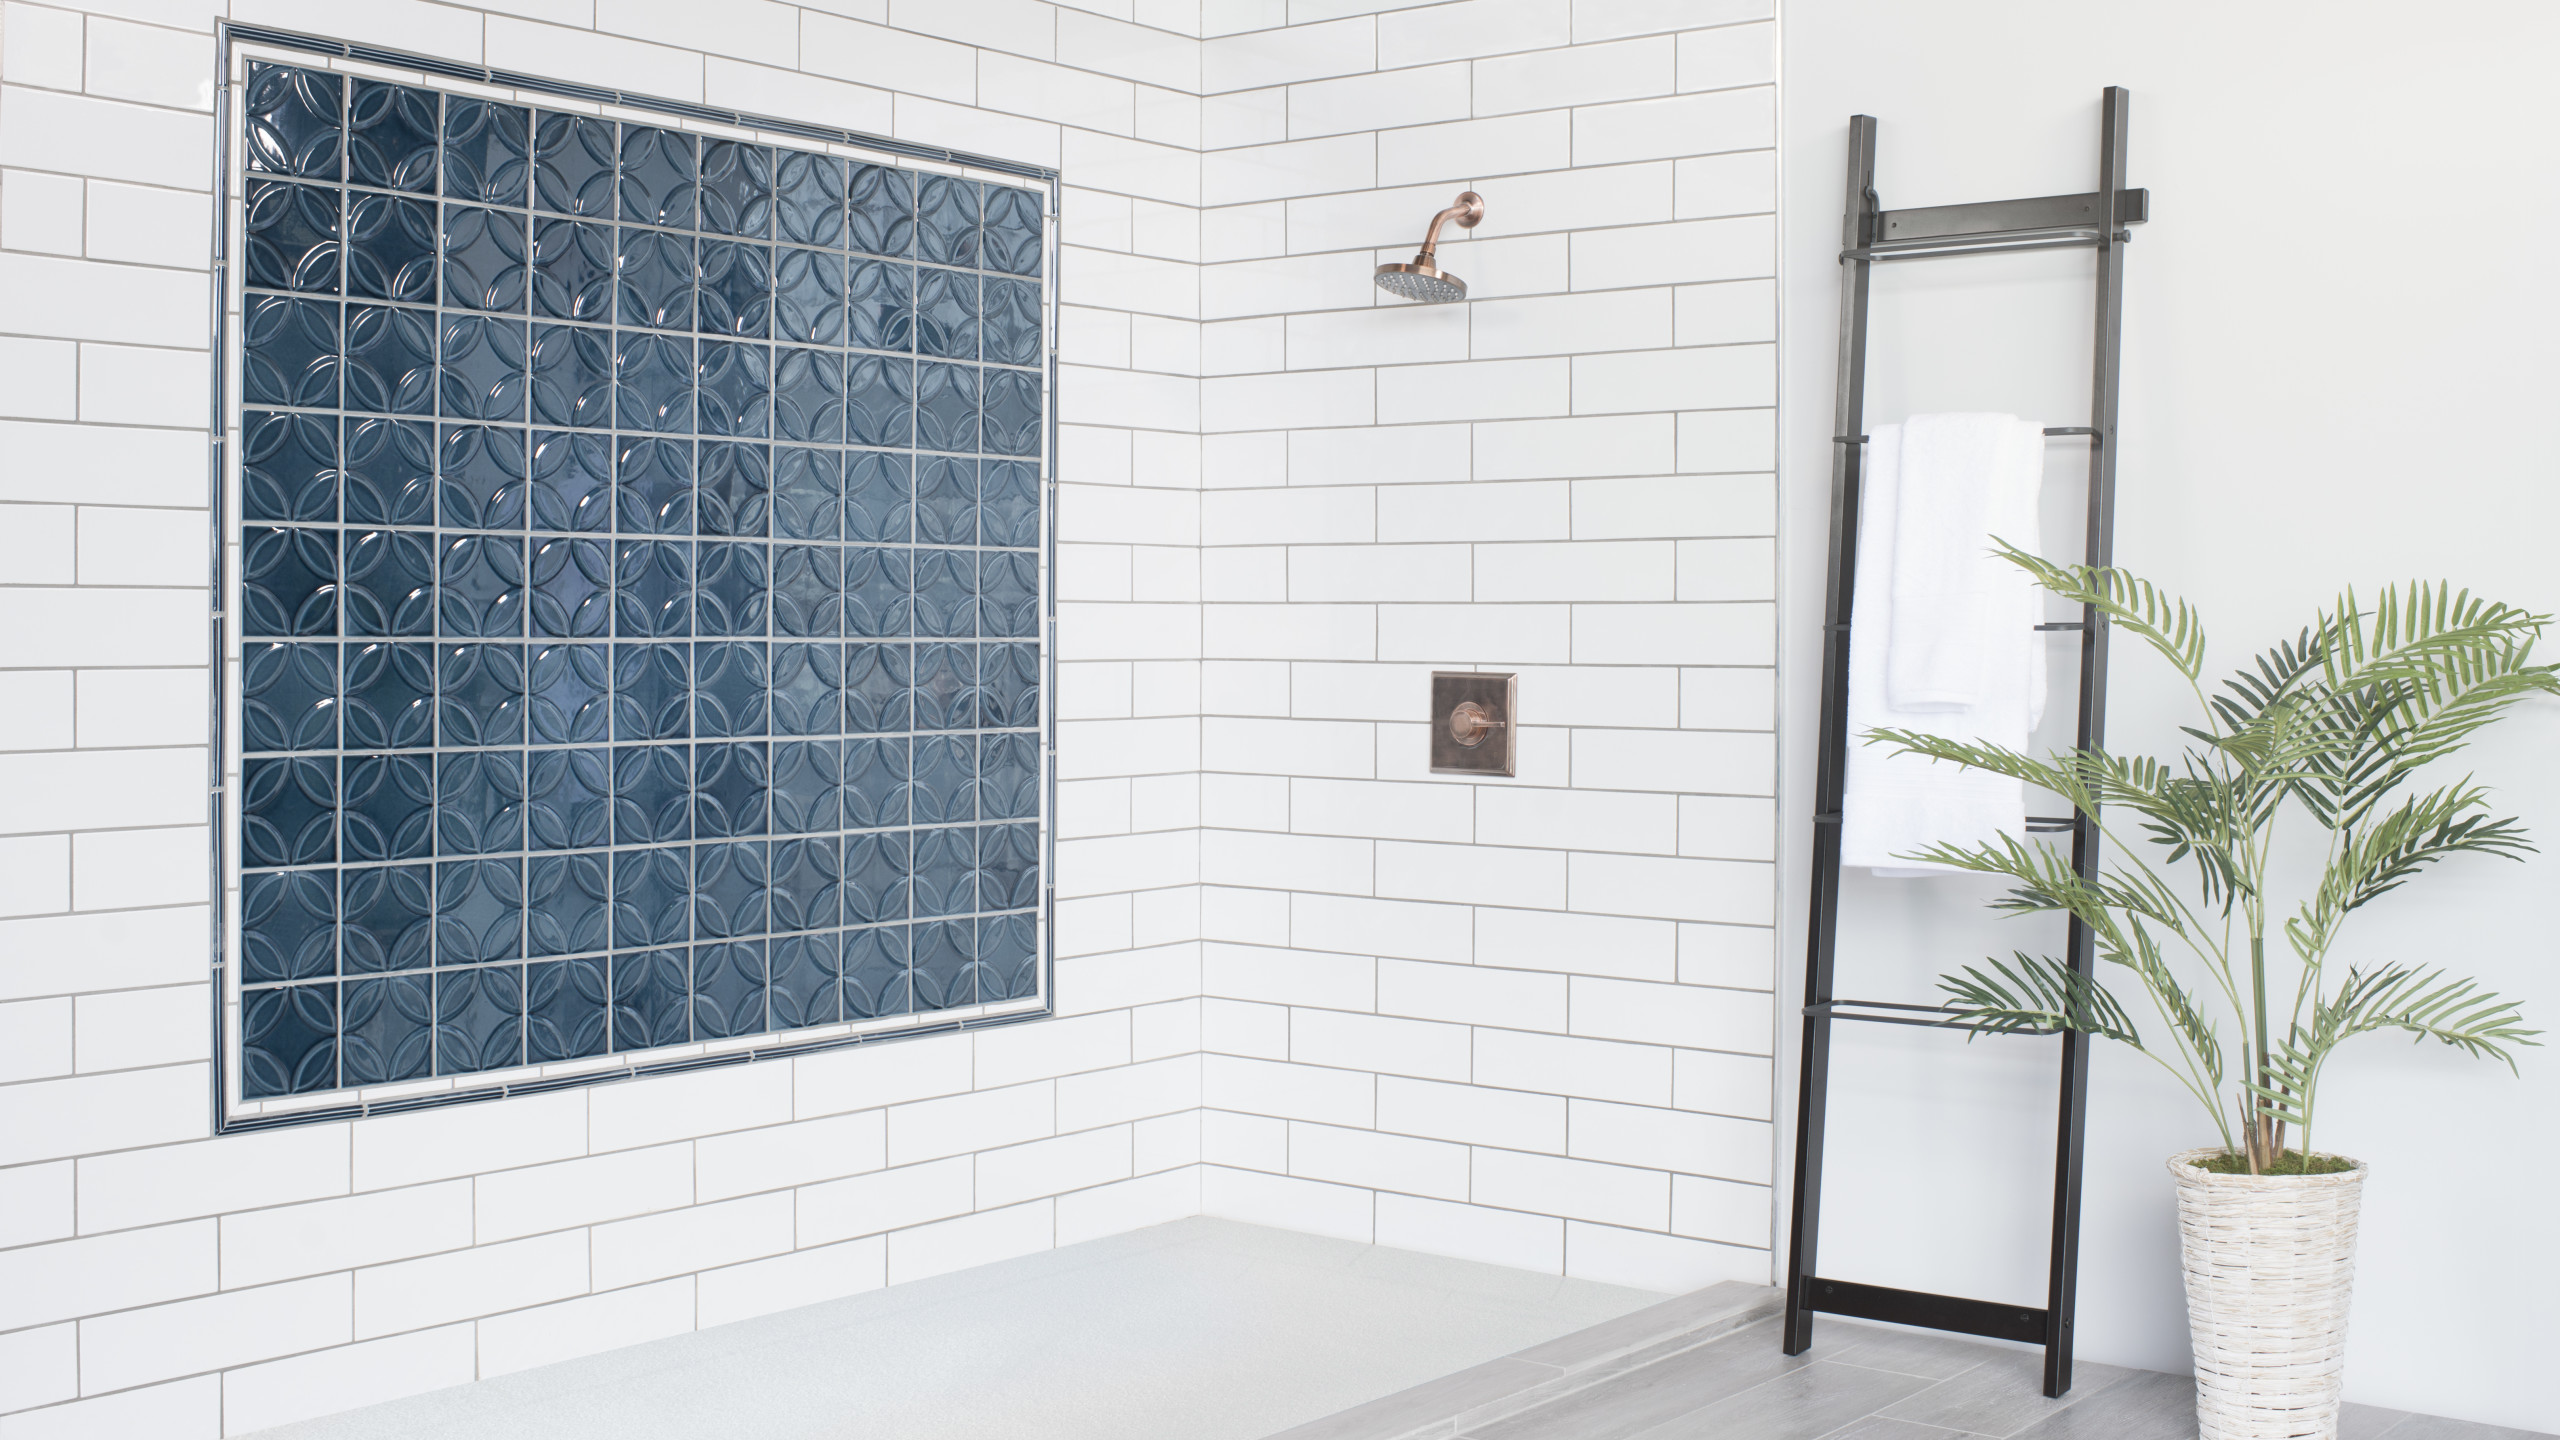 Bathroom Grout Shout Out To Grout Bedrosians Tile Stone